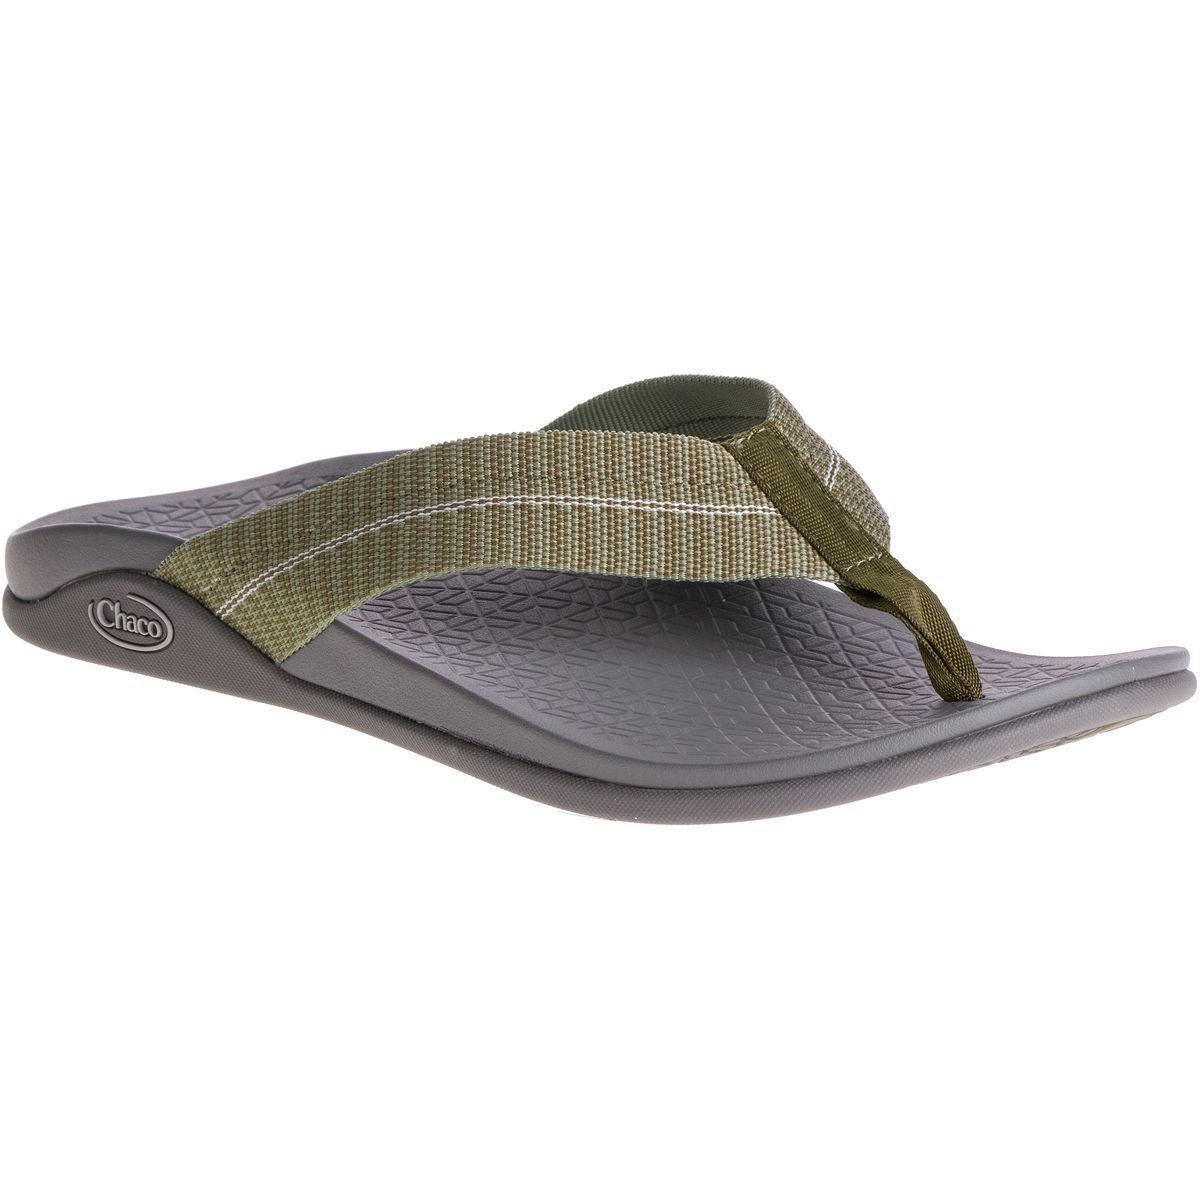 d0baffc22 Lyst - Chaco Waypoint Cloud Flip Flop in Green for Men